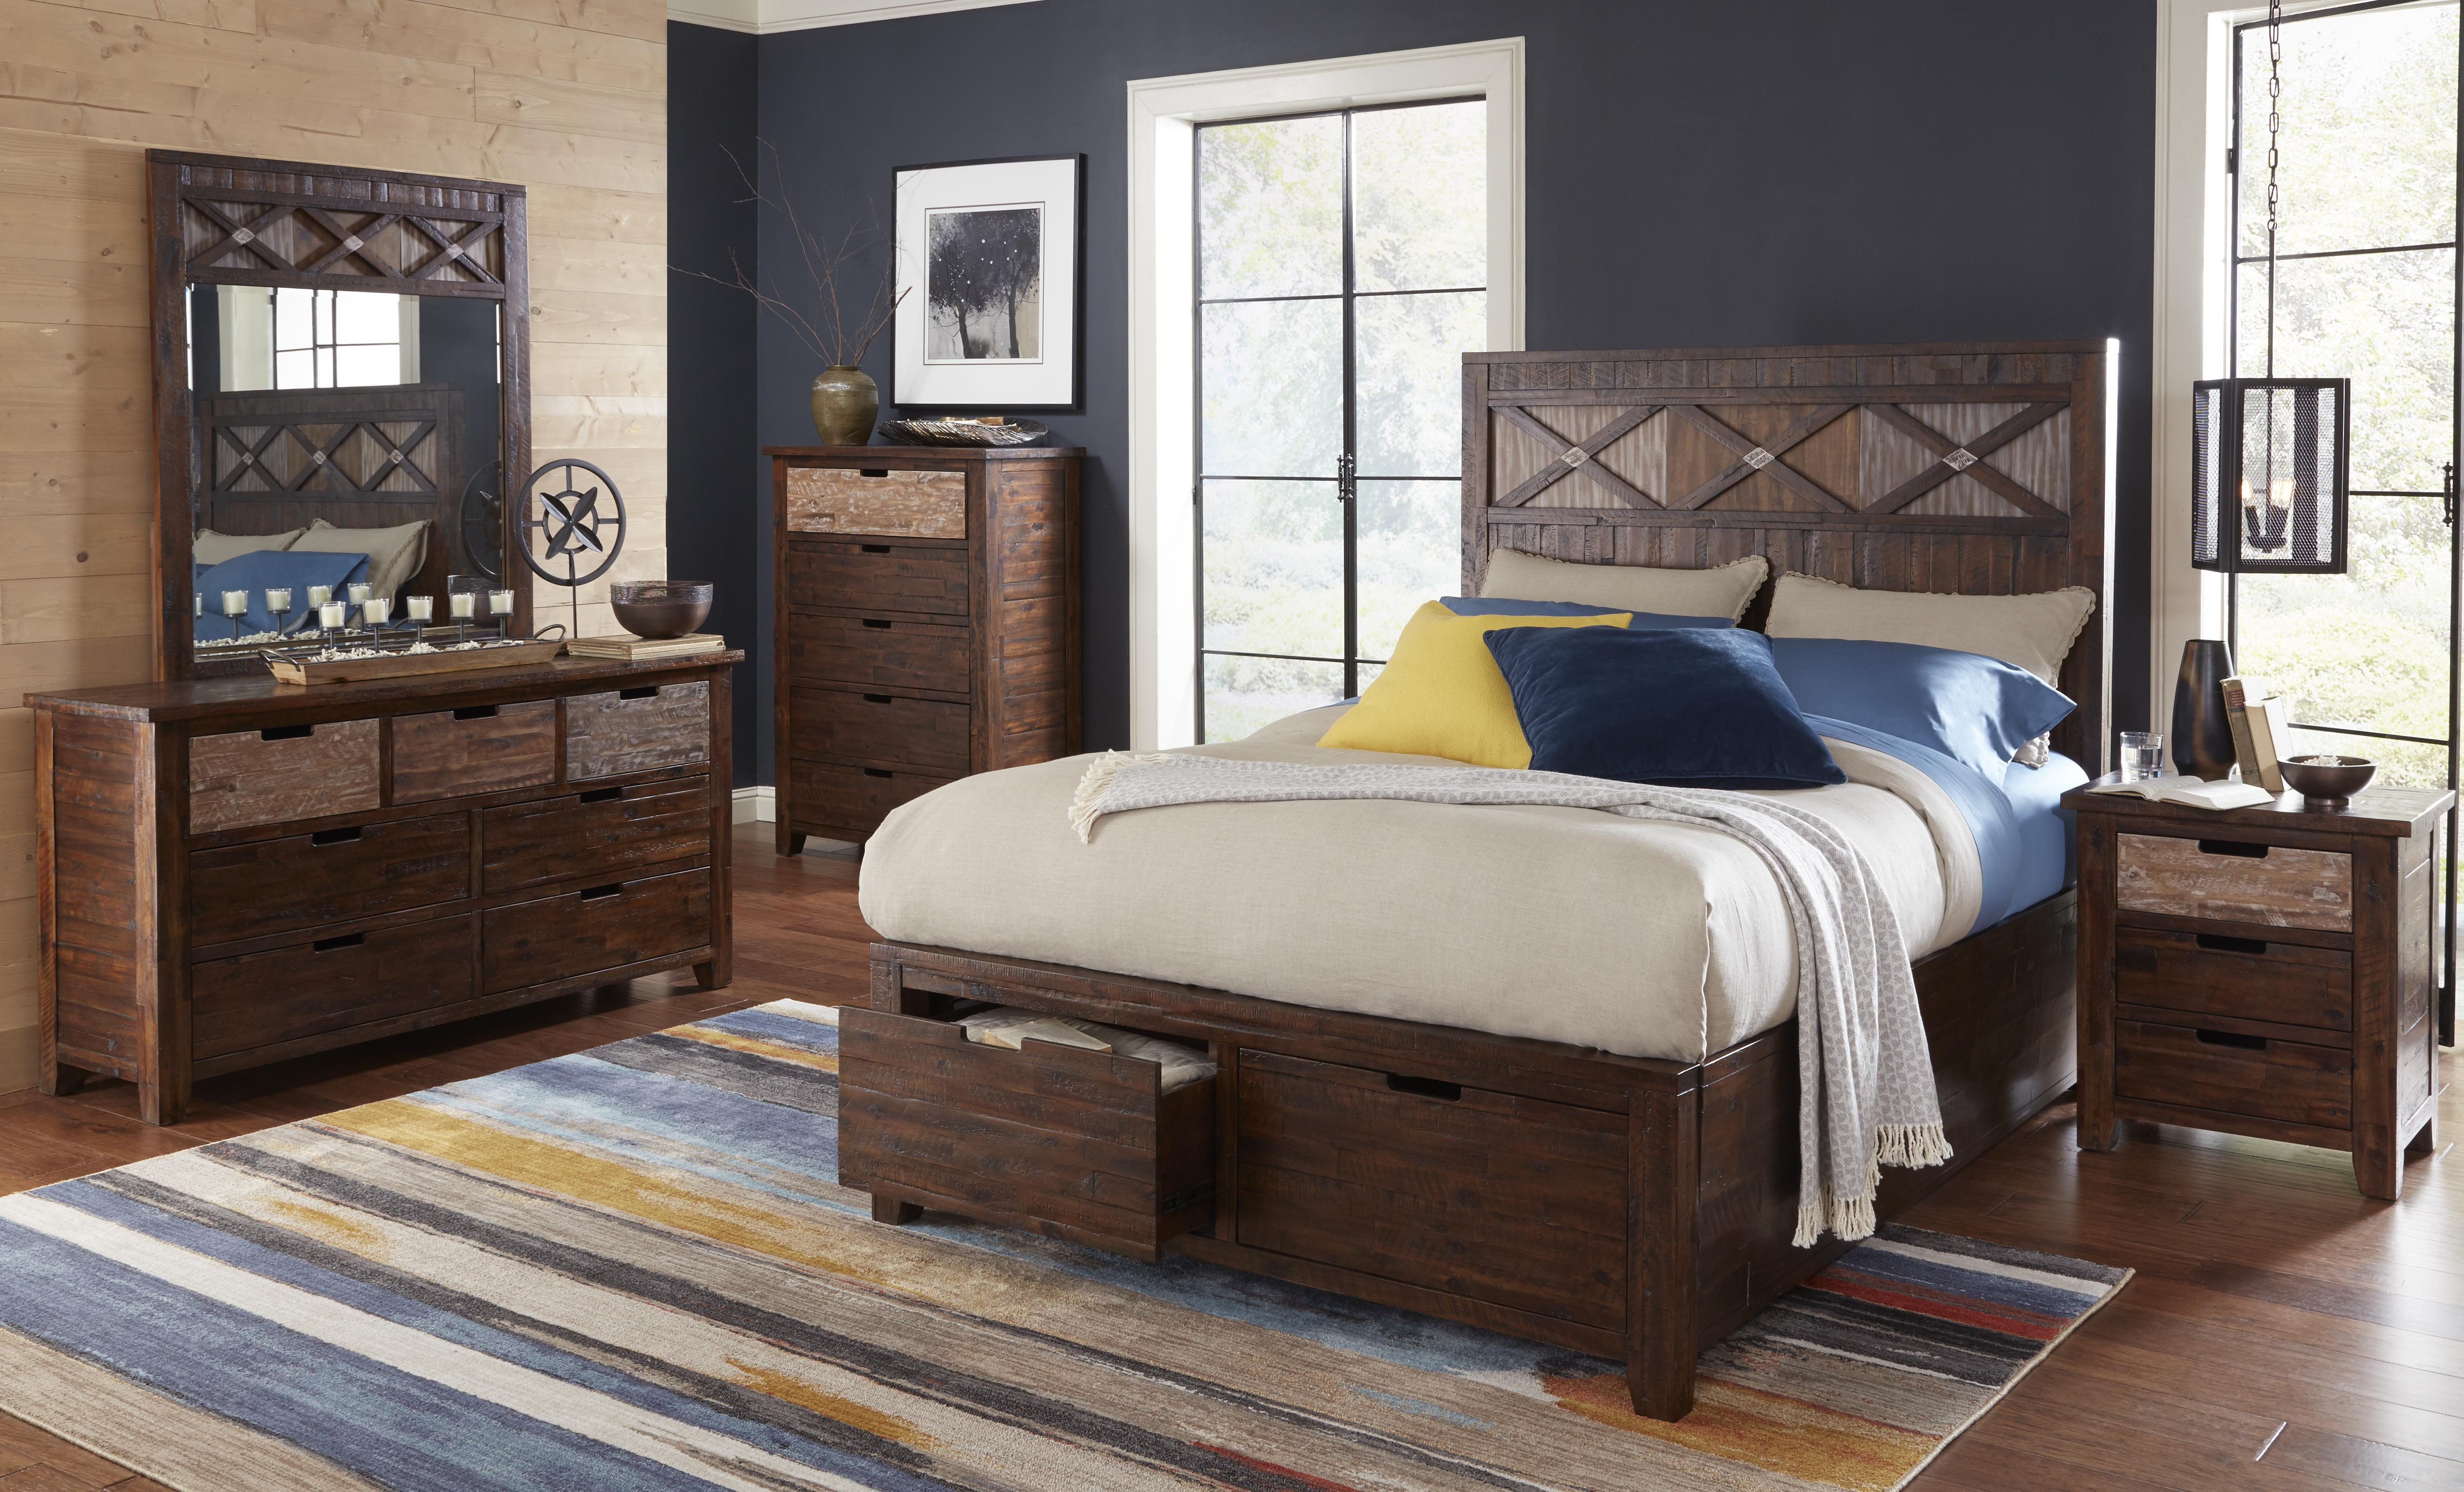 Jofran Furniture Painted Canyon 2pc Bedroom Set With Queen Storage Bed The Classy Home